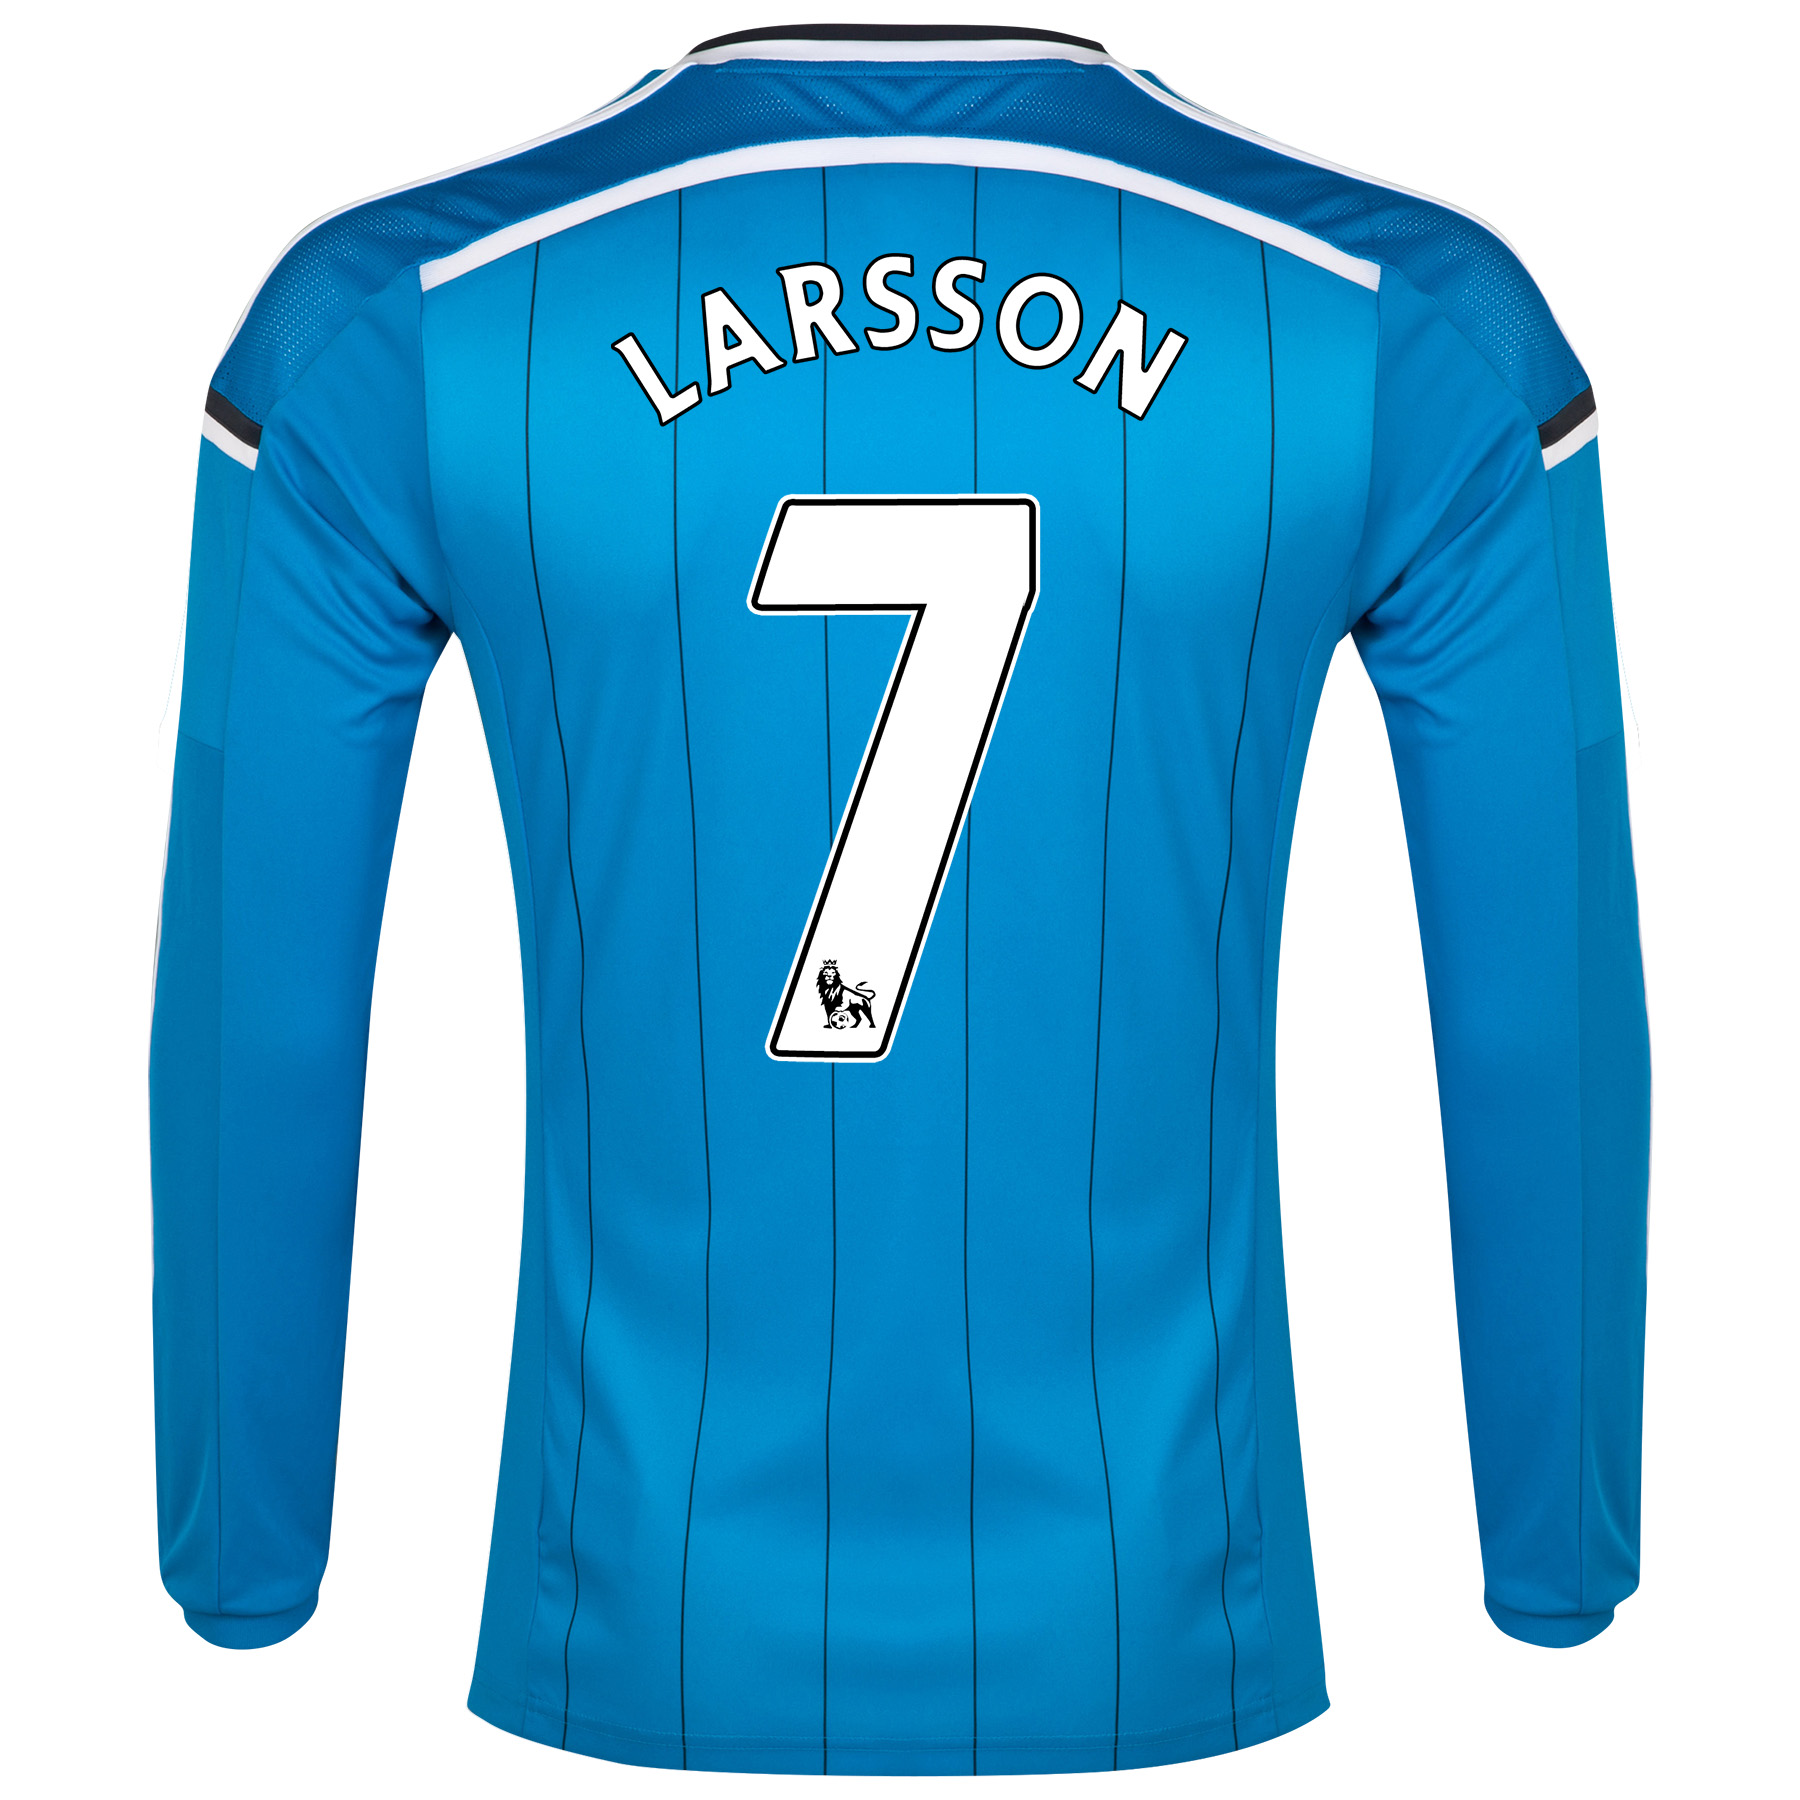 Sunderland Away Shirt 2014/15 - Long Sleeved Lt Blue with Larsson 7 printing